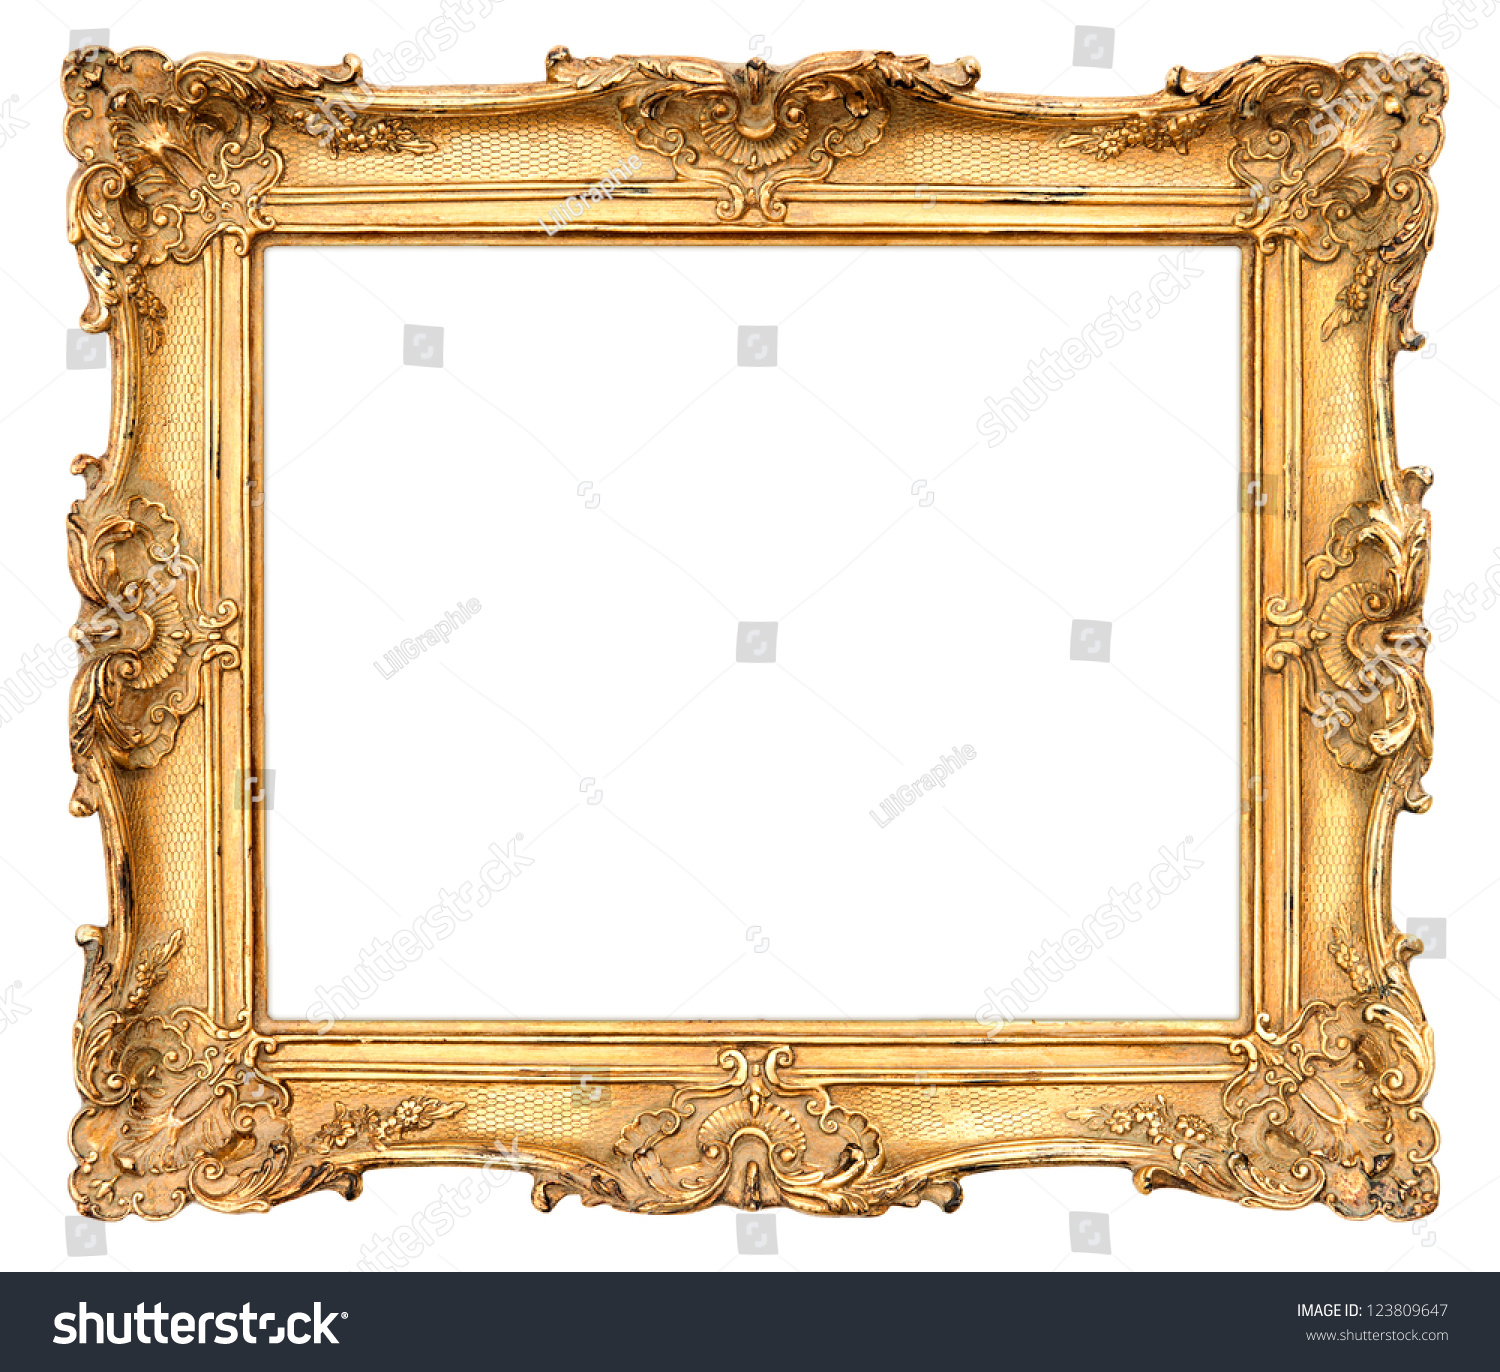 Old golden frame beautiful vintage background stock photo for How to make vintage frames